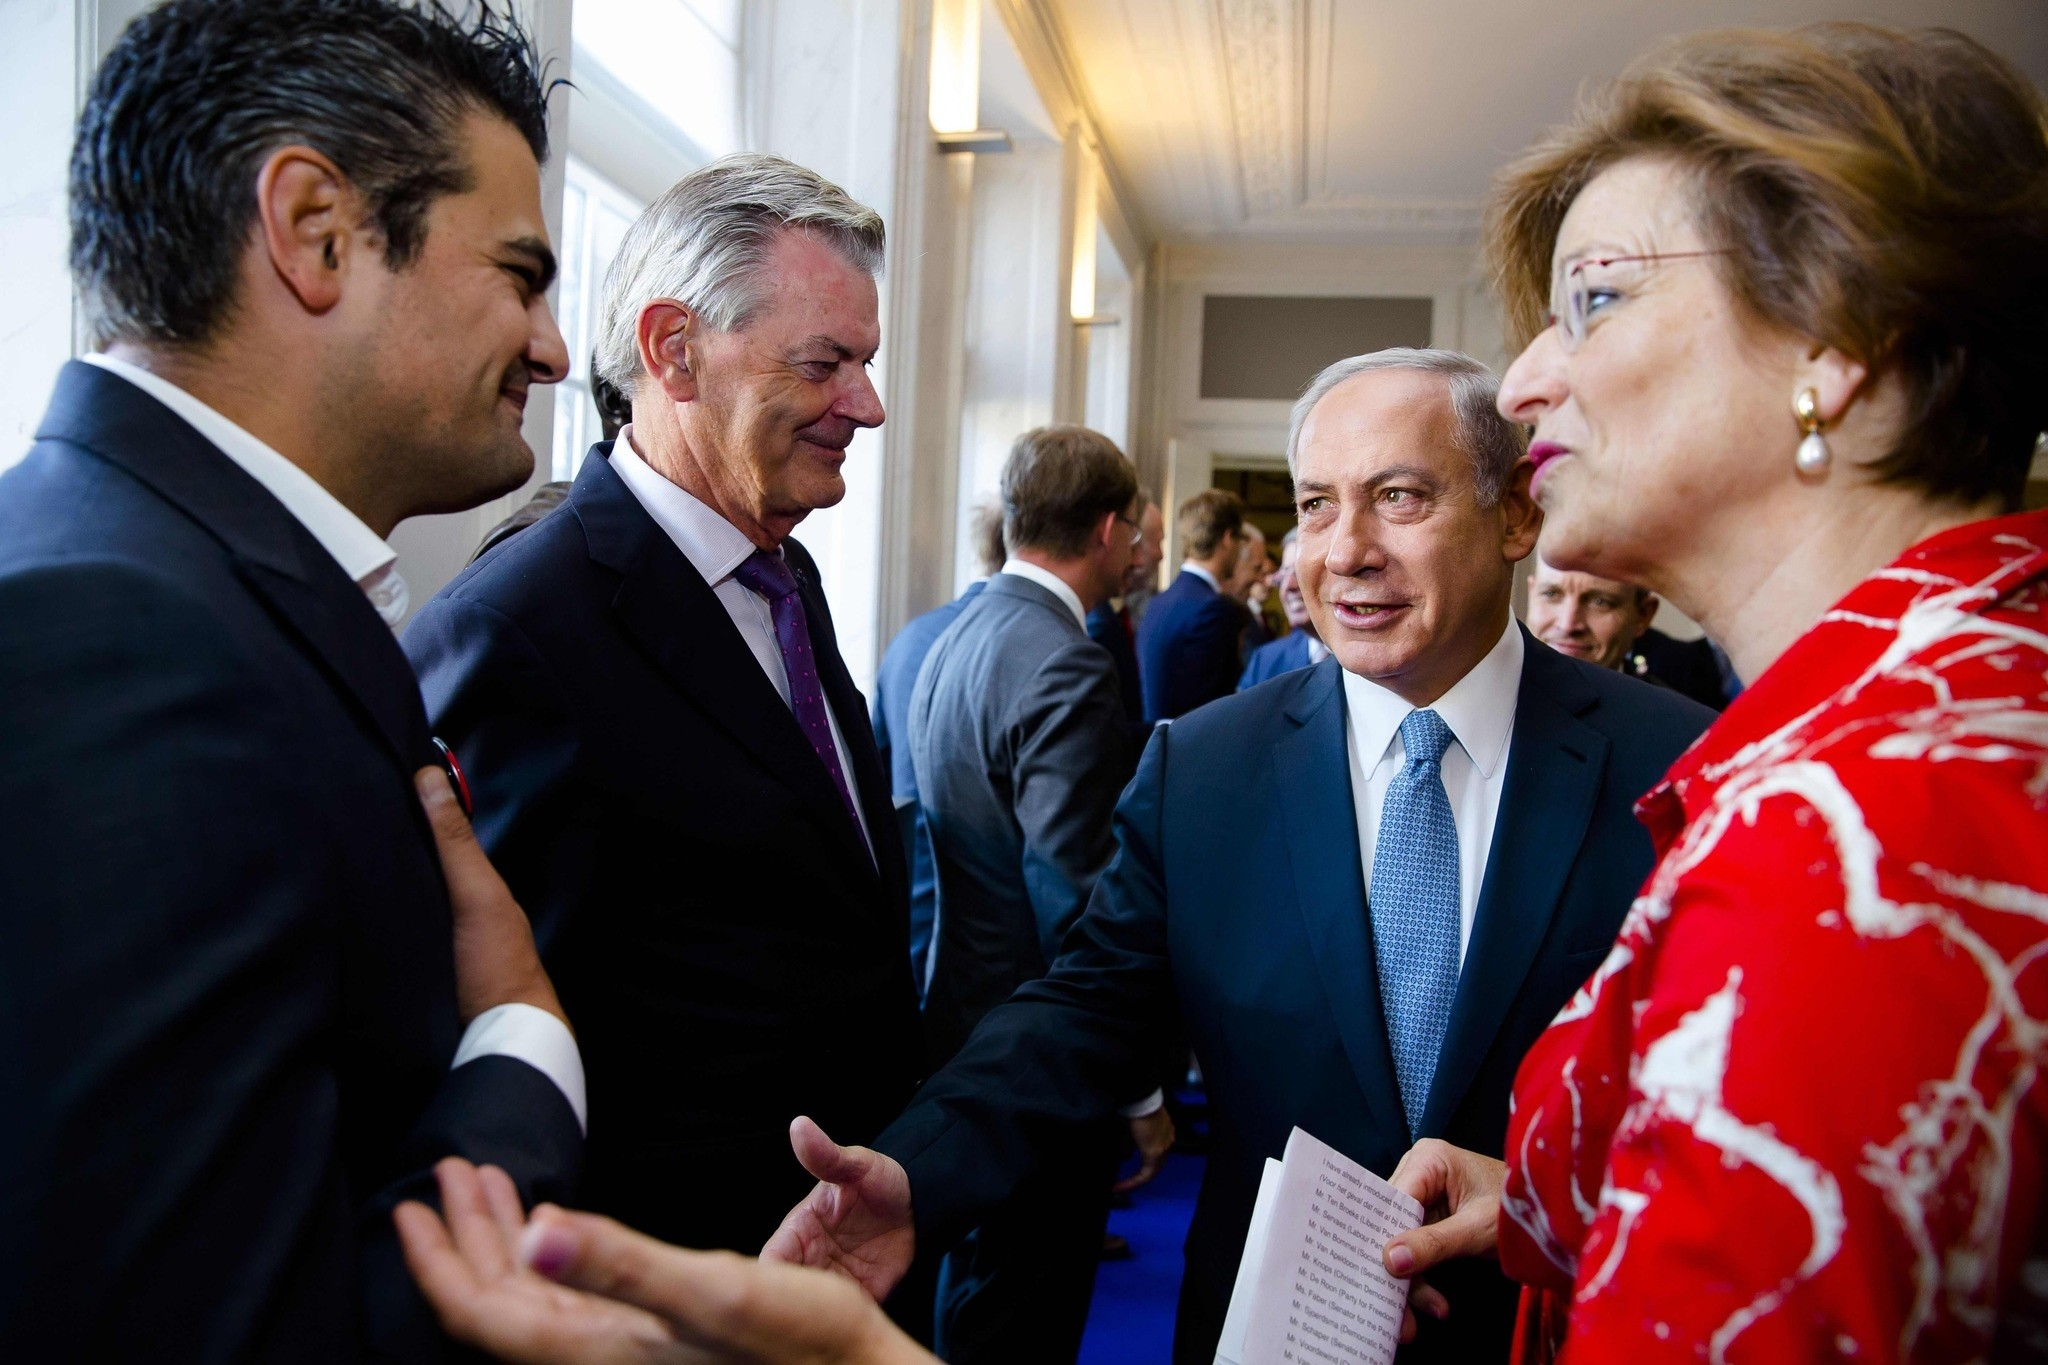 Dutch Parliament Member Tunahan Kuzu (L) refuses to shake hands with Prime Minister Benjamin Netanyahu during his visit to the States General at the Binnenhof. (AFP Photo)